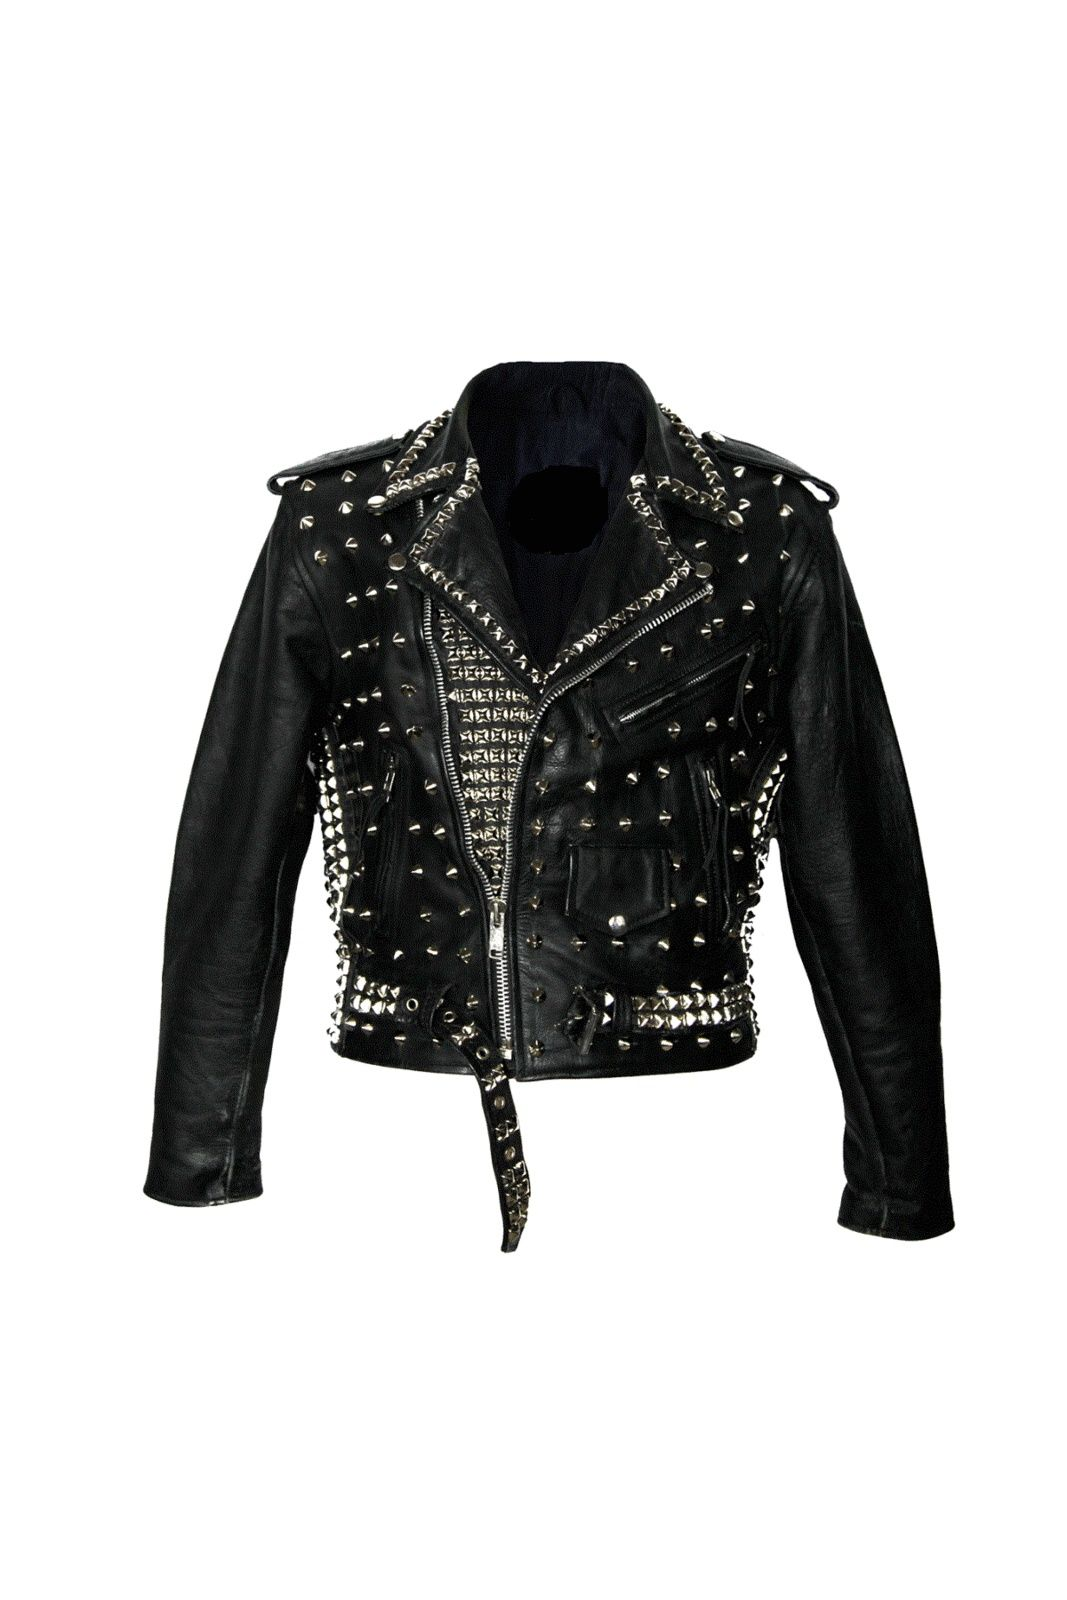 Handcrafted Women S Black Studded Cowhide Leather Jacket Leather Jacket Womens Fashion Jackets Jackets